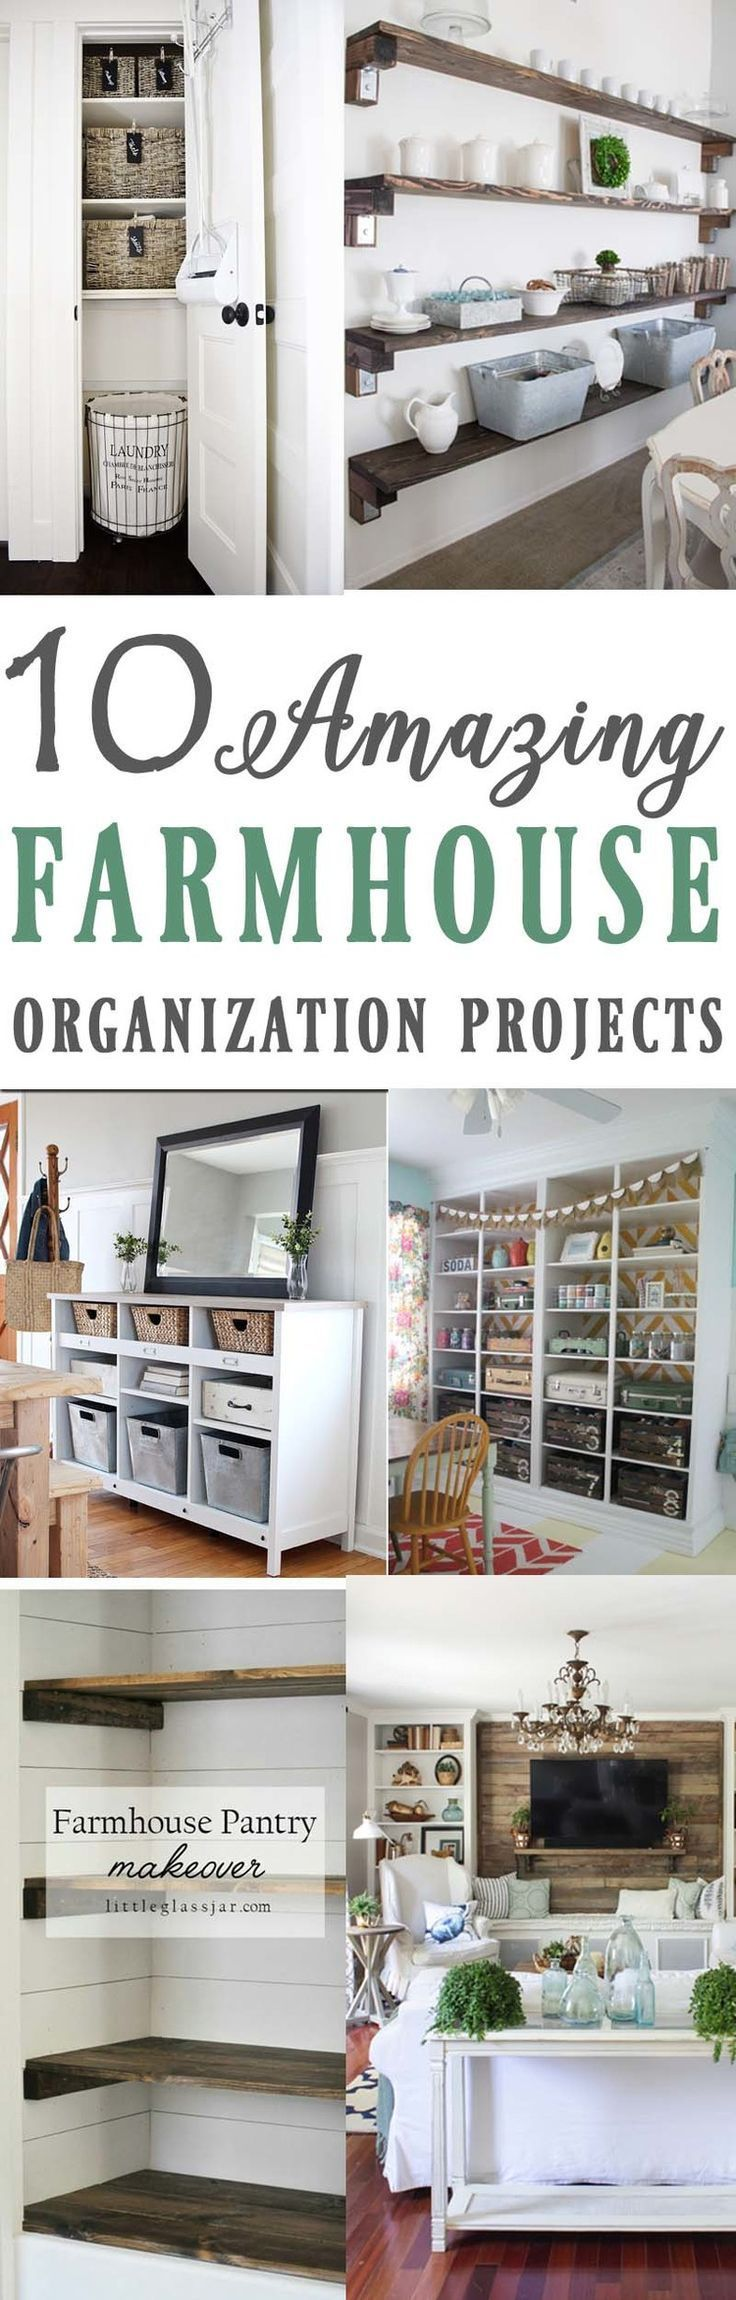 Farmhouse Storage and Organization Ideas  The Mountain View Cottage & Farmhouse Storage and Organization Ideas | Pinterest | Storage ideas ...